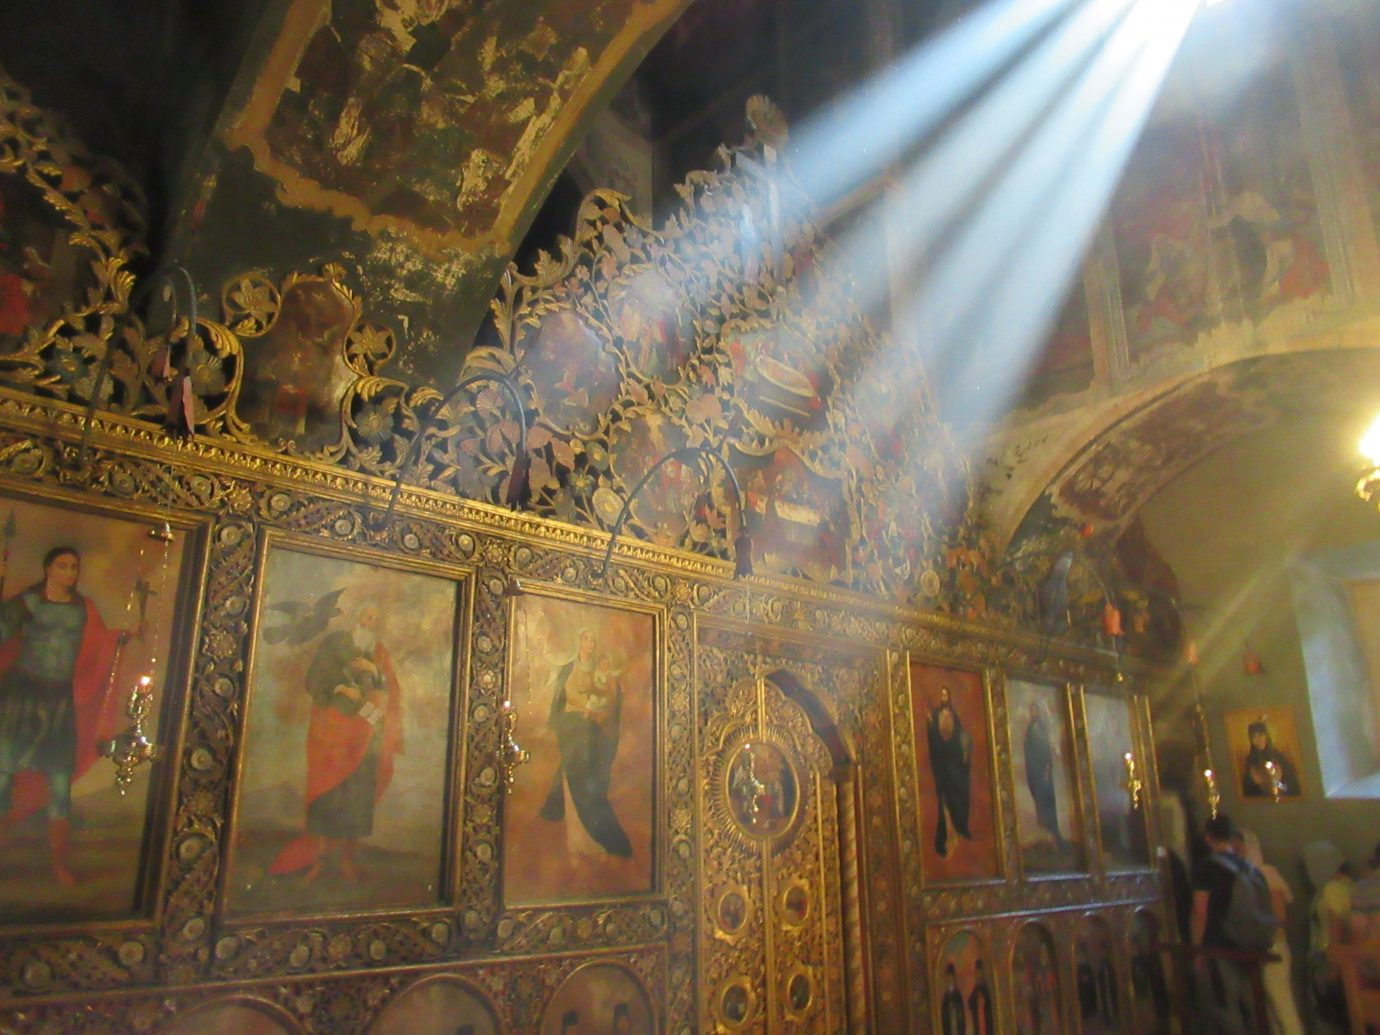 St. George's Church interior with light pouring in